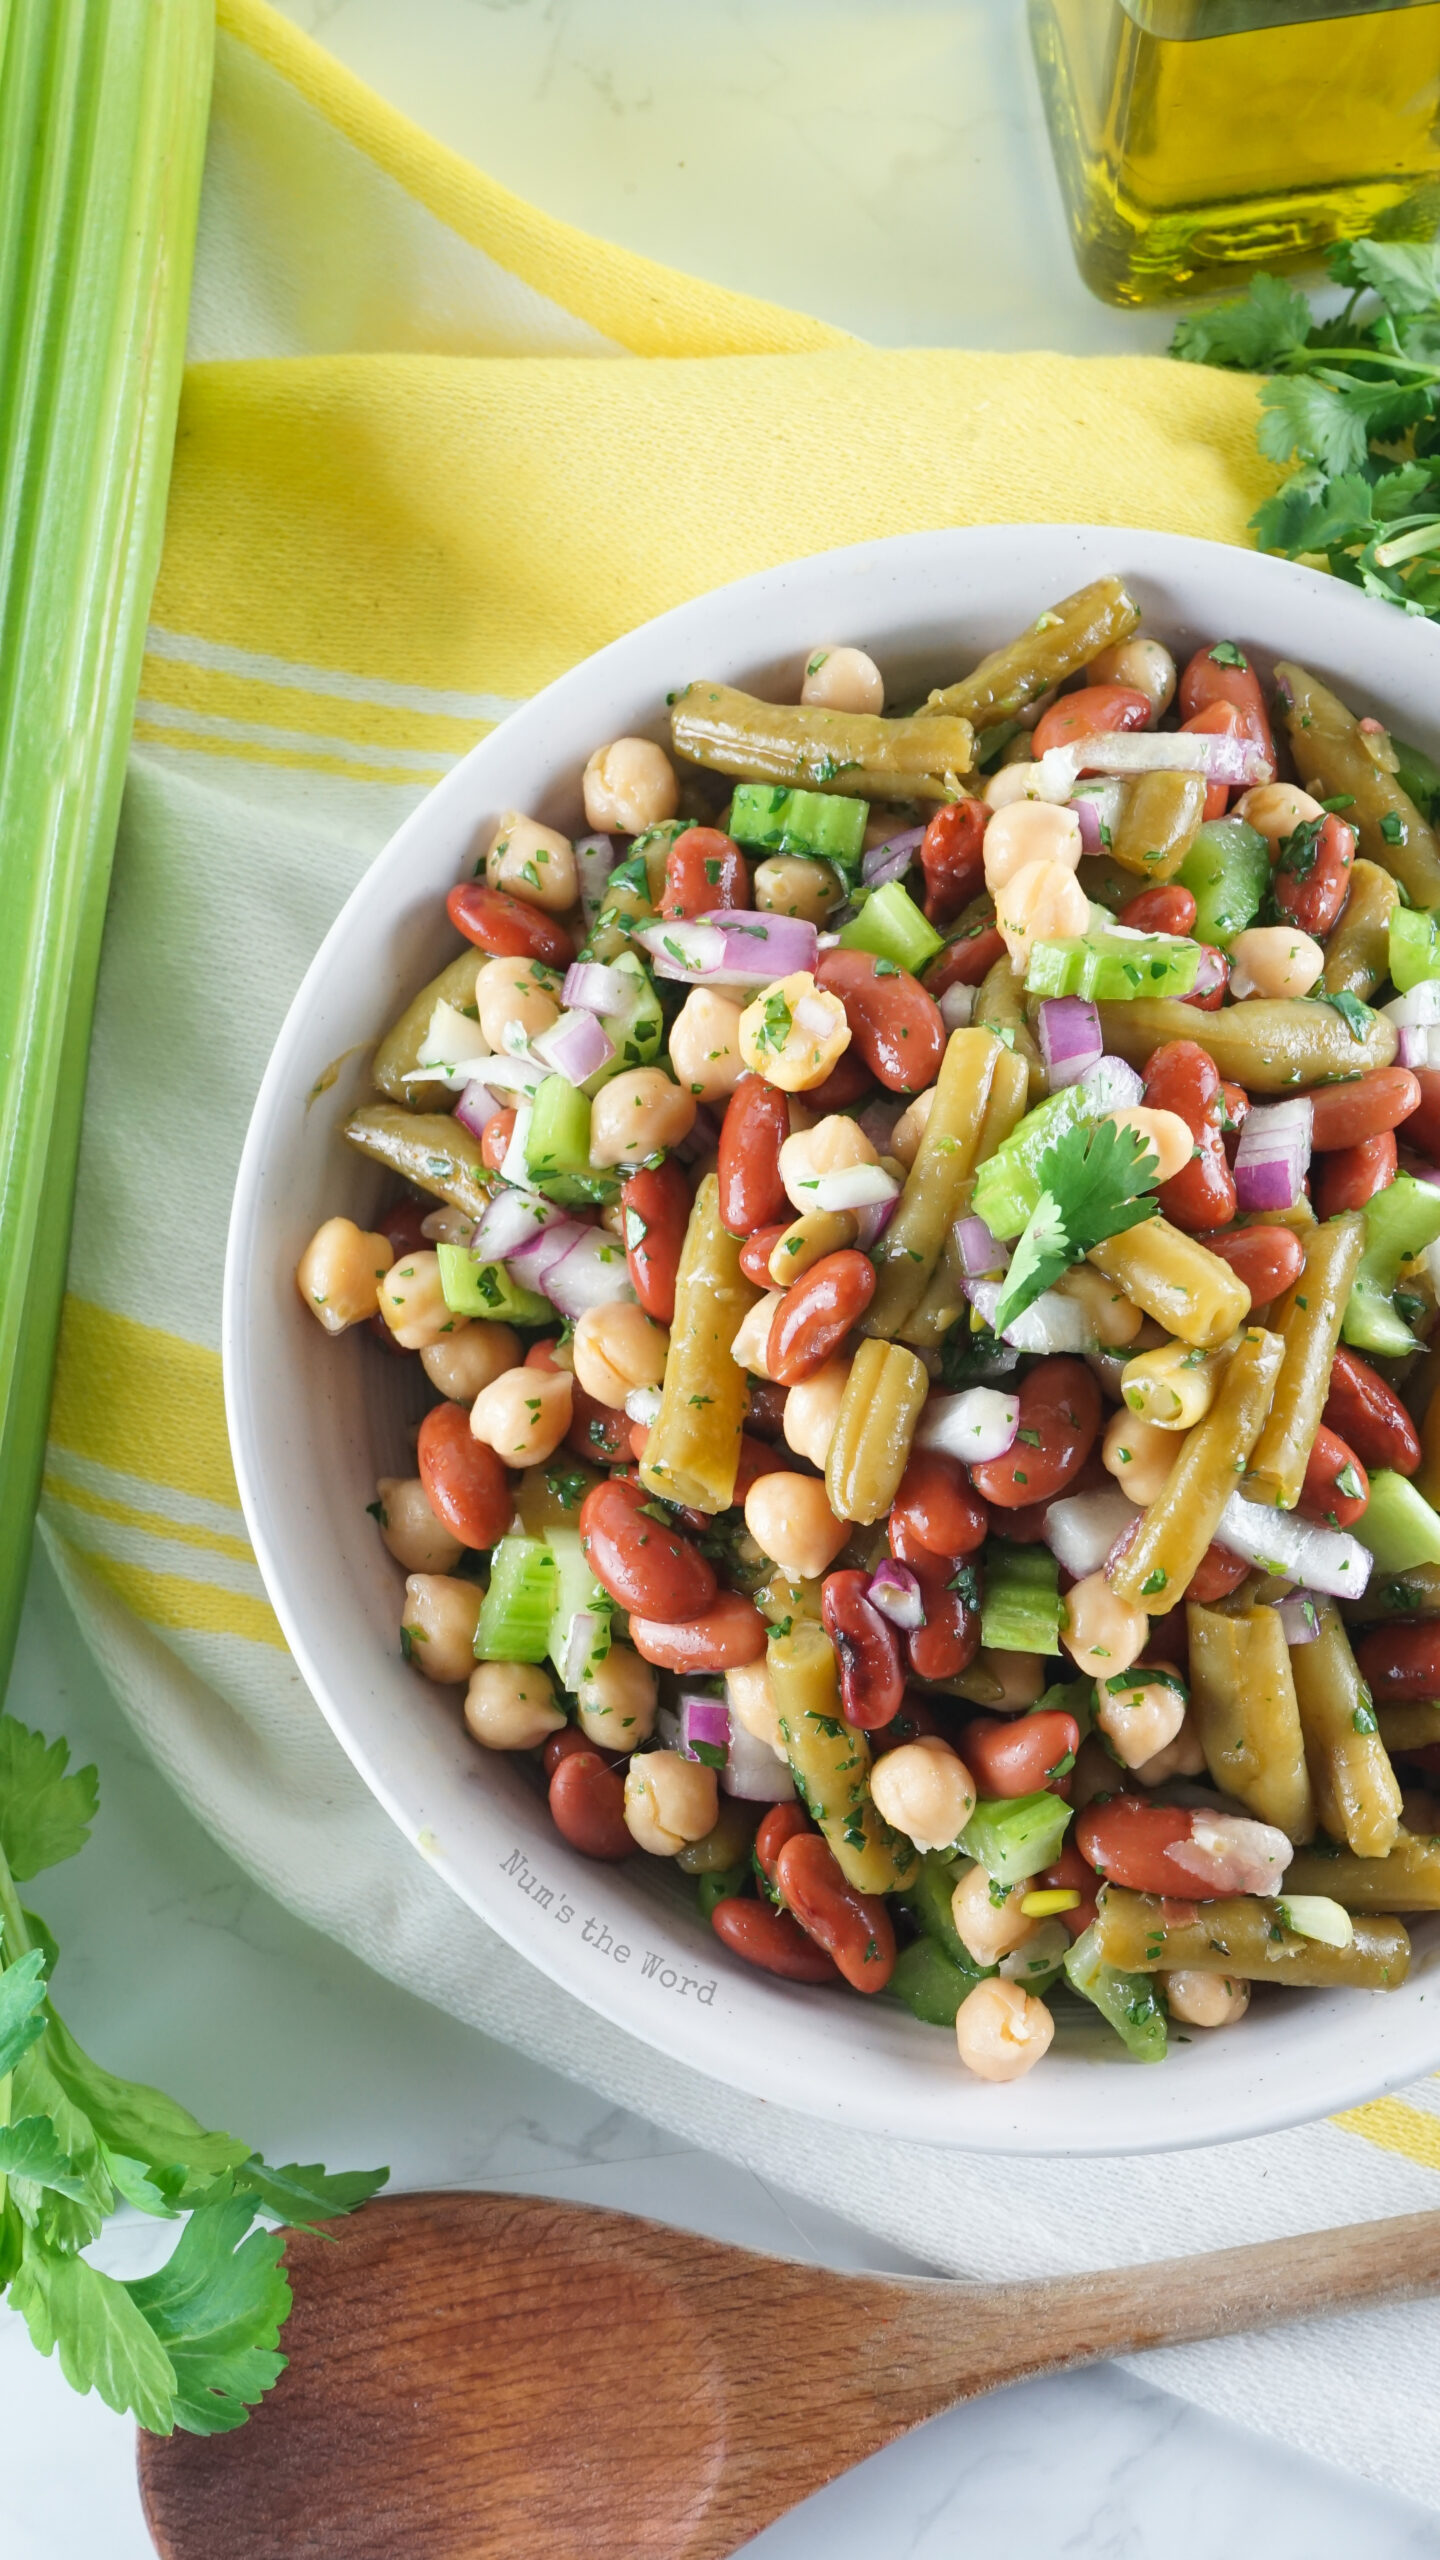 top view of 3 bean salad in a serving bowl.